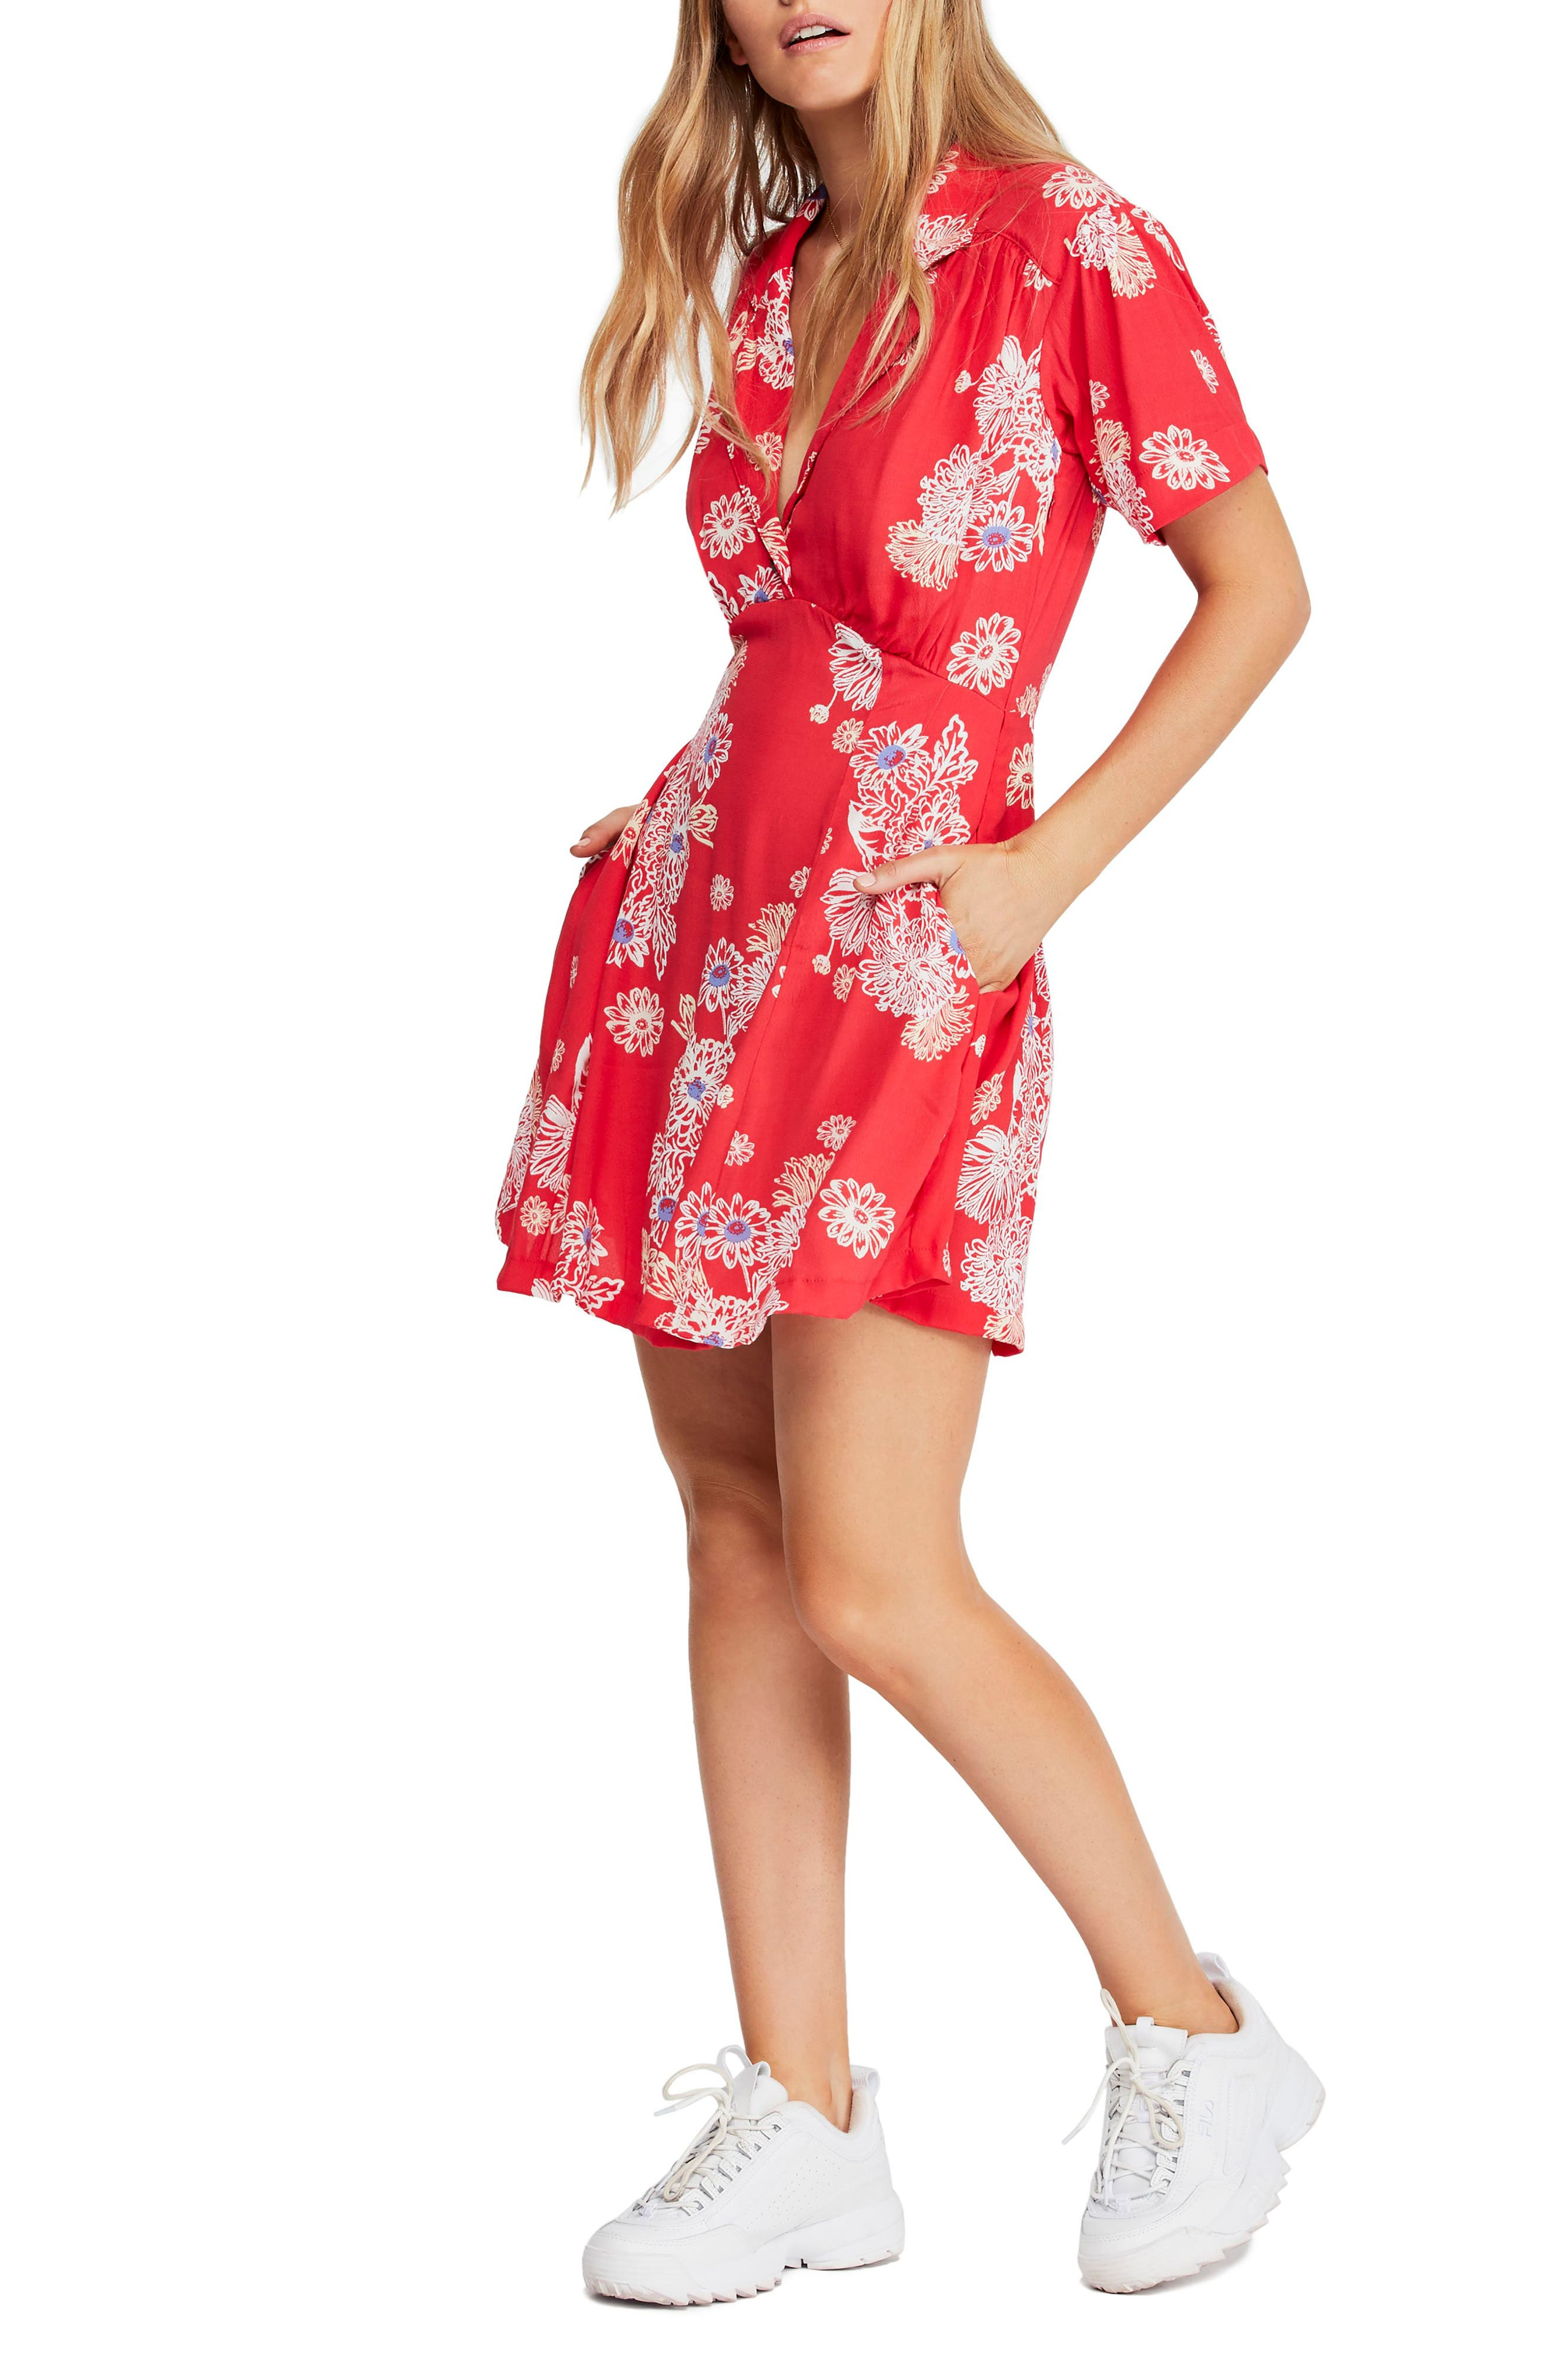 FREE PEOPLE, Blue Hawaii Minidress, Main thumbnail 1, color, RED COMBO